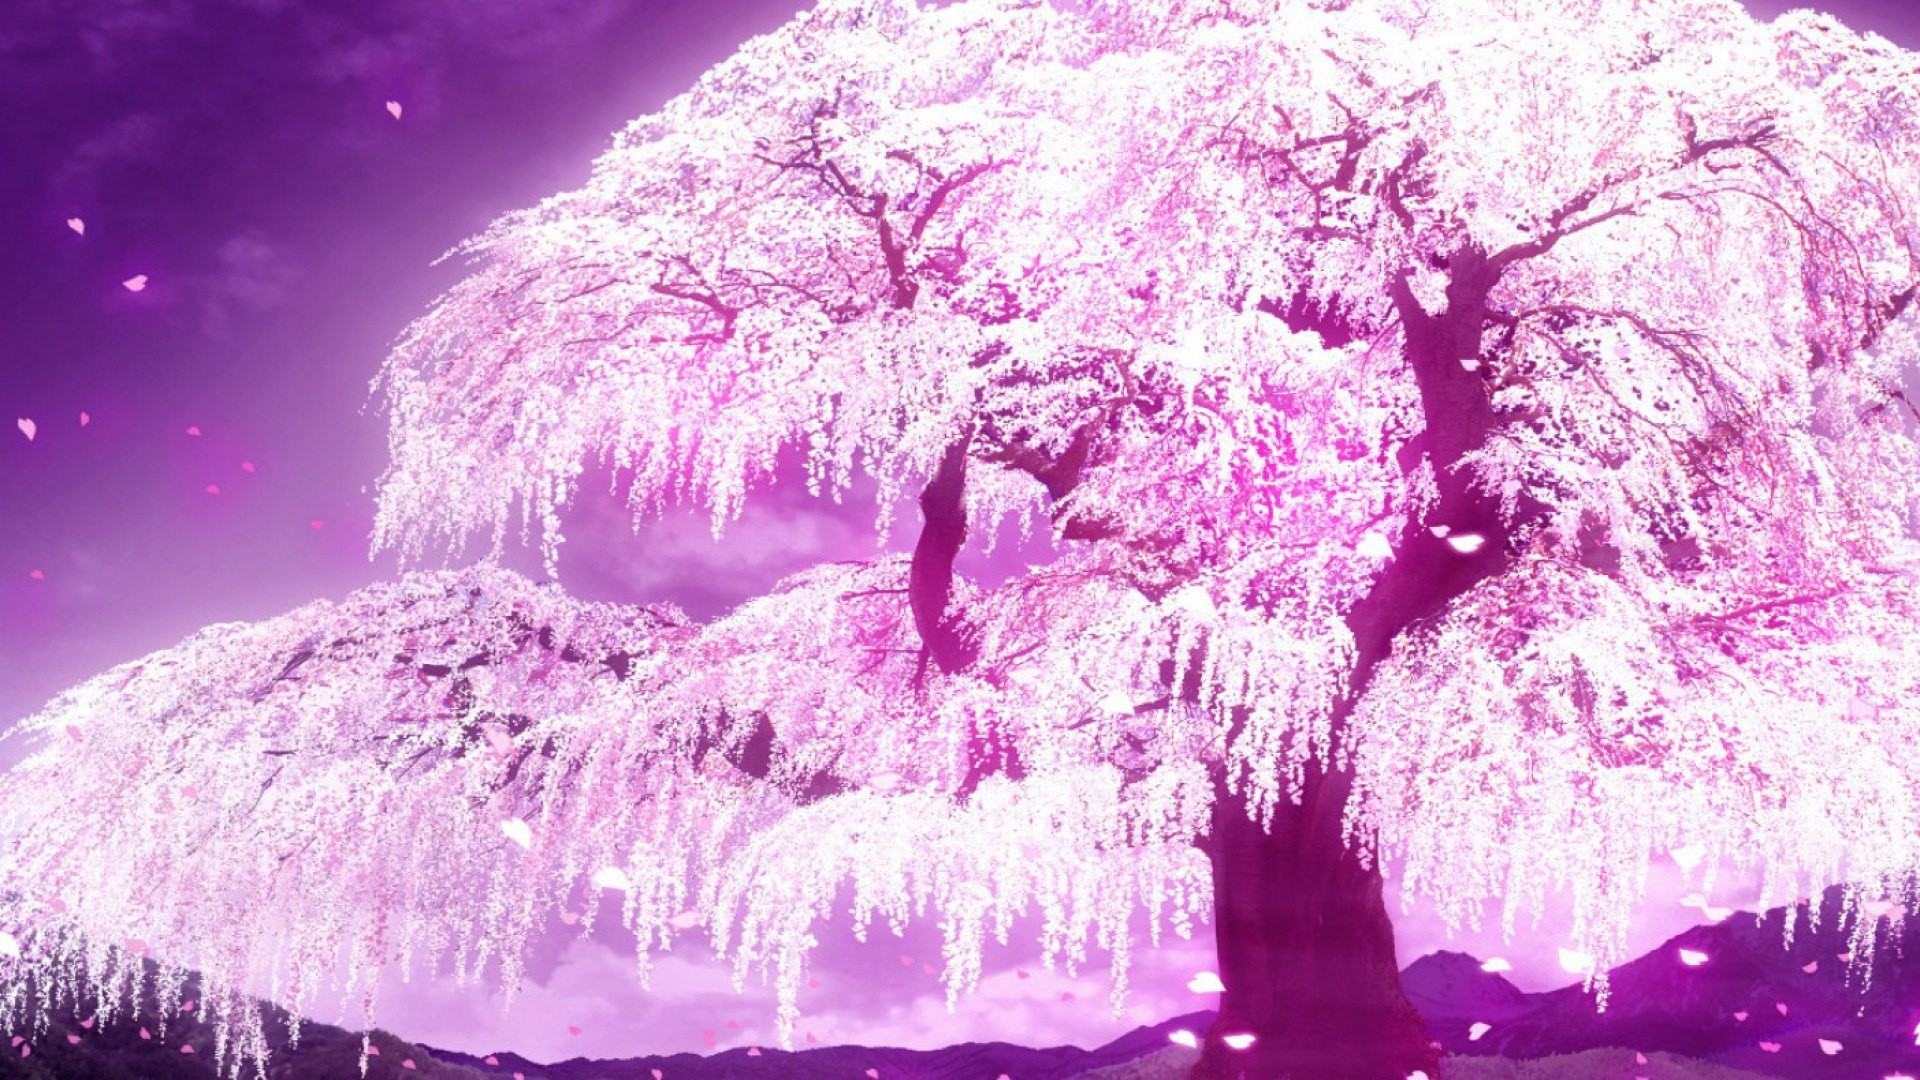 1920x1080 1000+ images about 1アニメ壁紙 on Pinterest | Anime scenery ... Cherry Blossom  WallpaperCherry ...